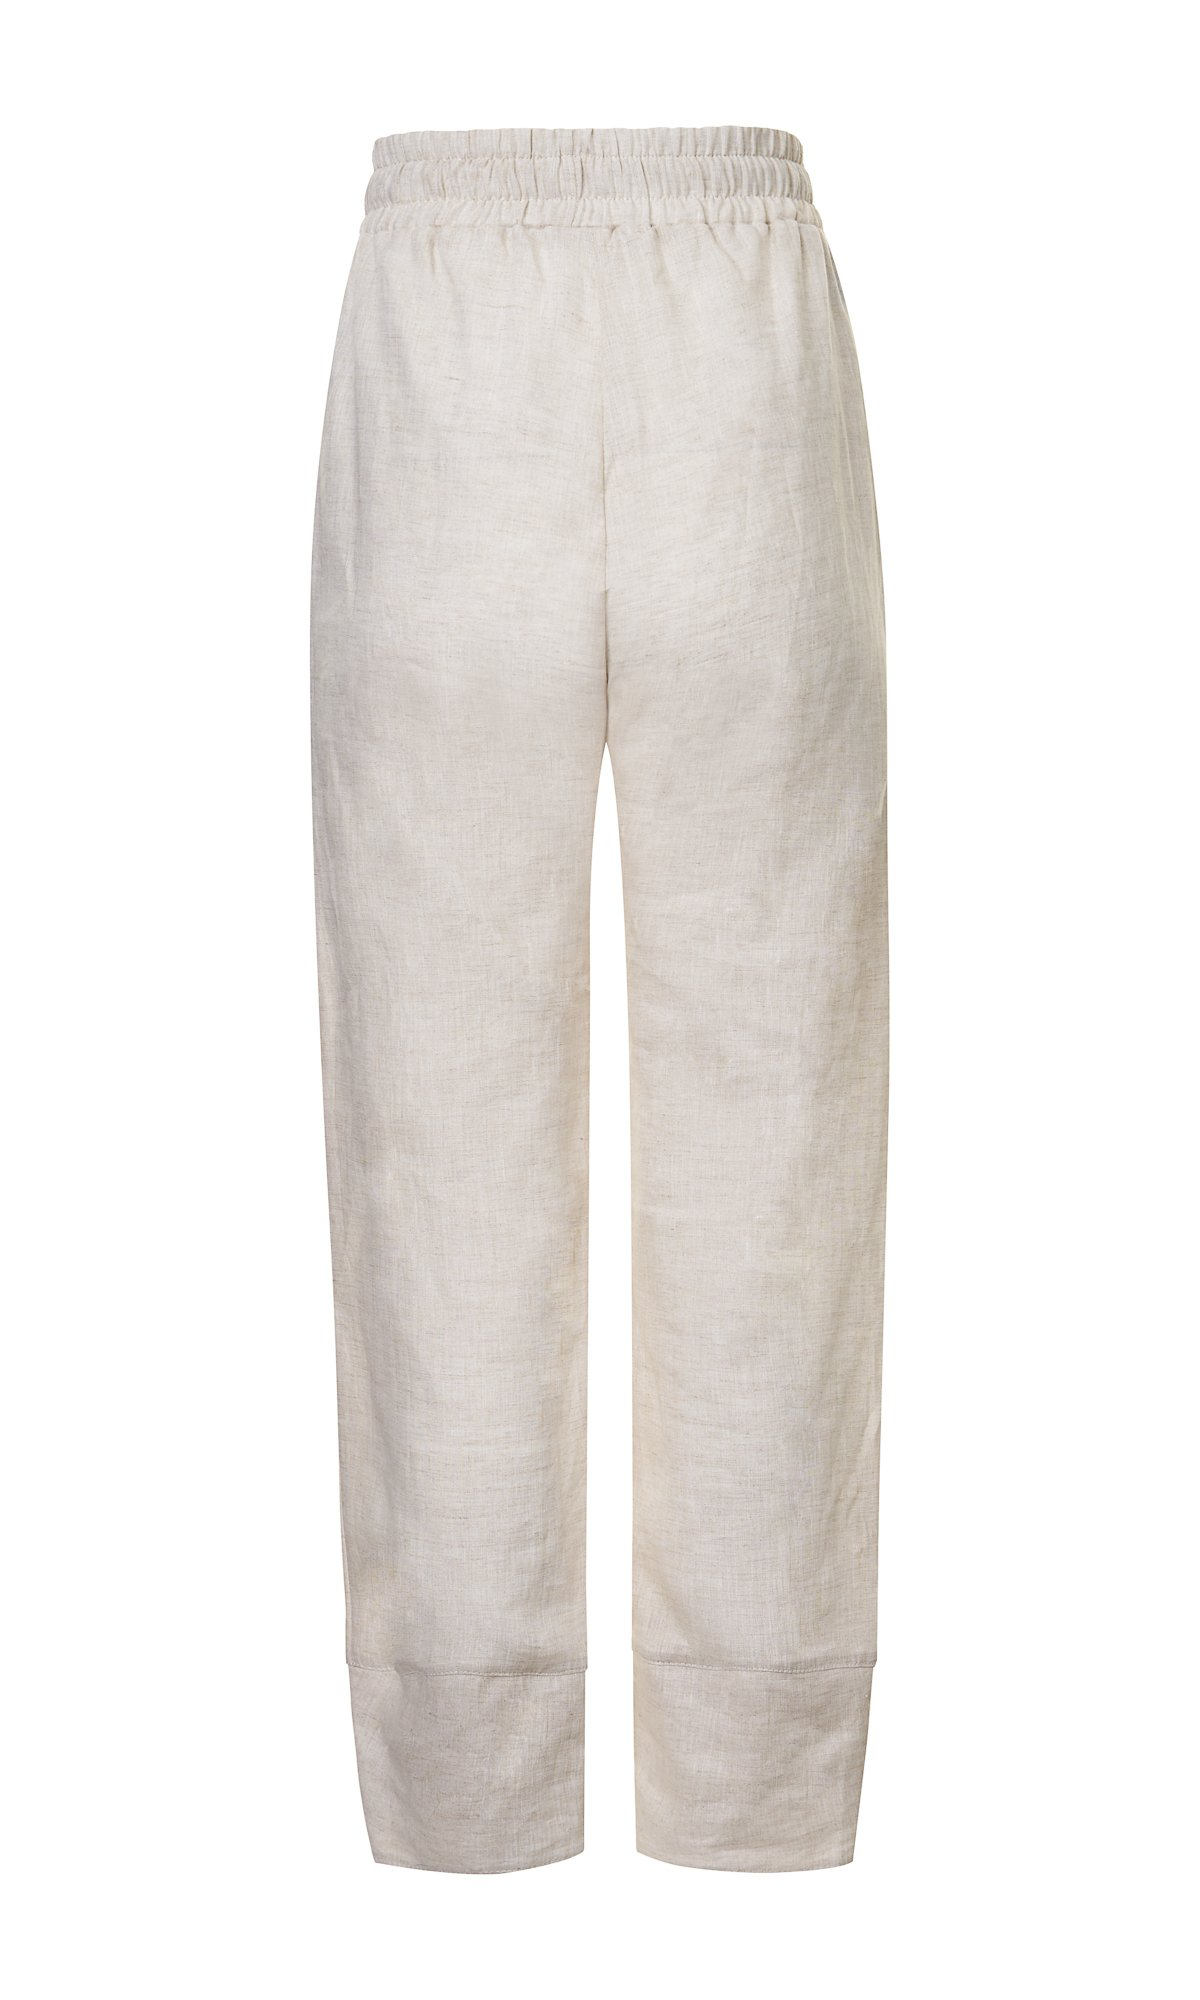 Linen Pants with Wide Ankle Cuffs